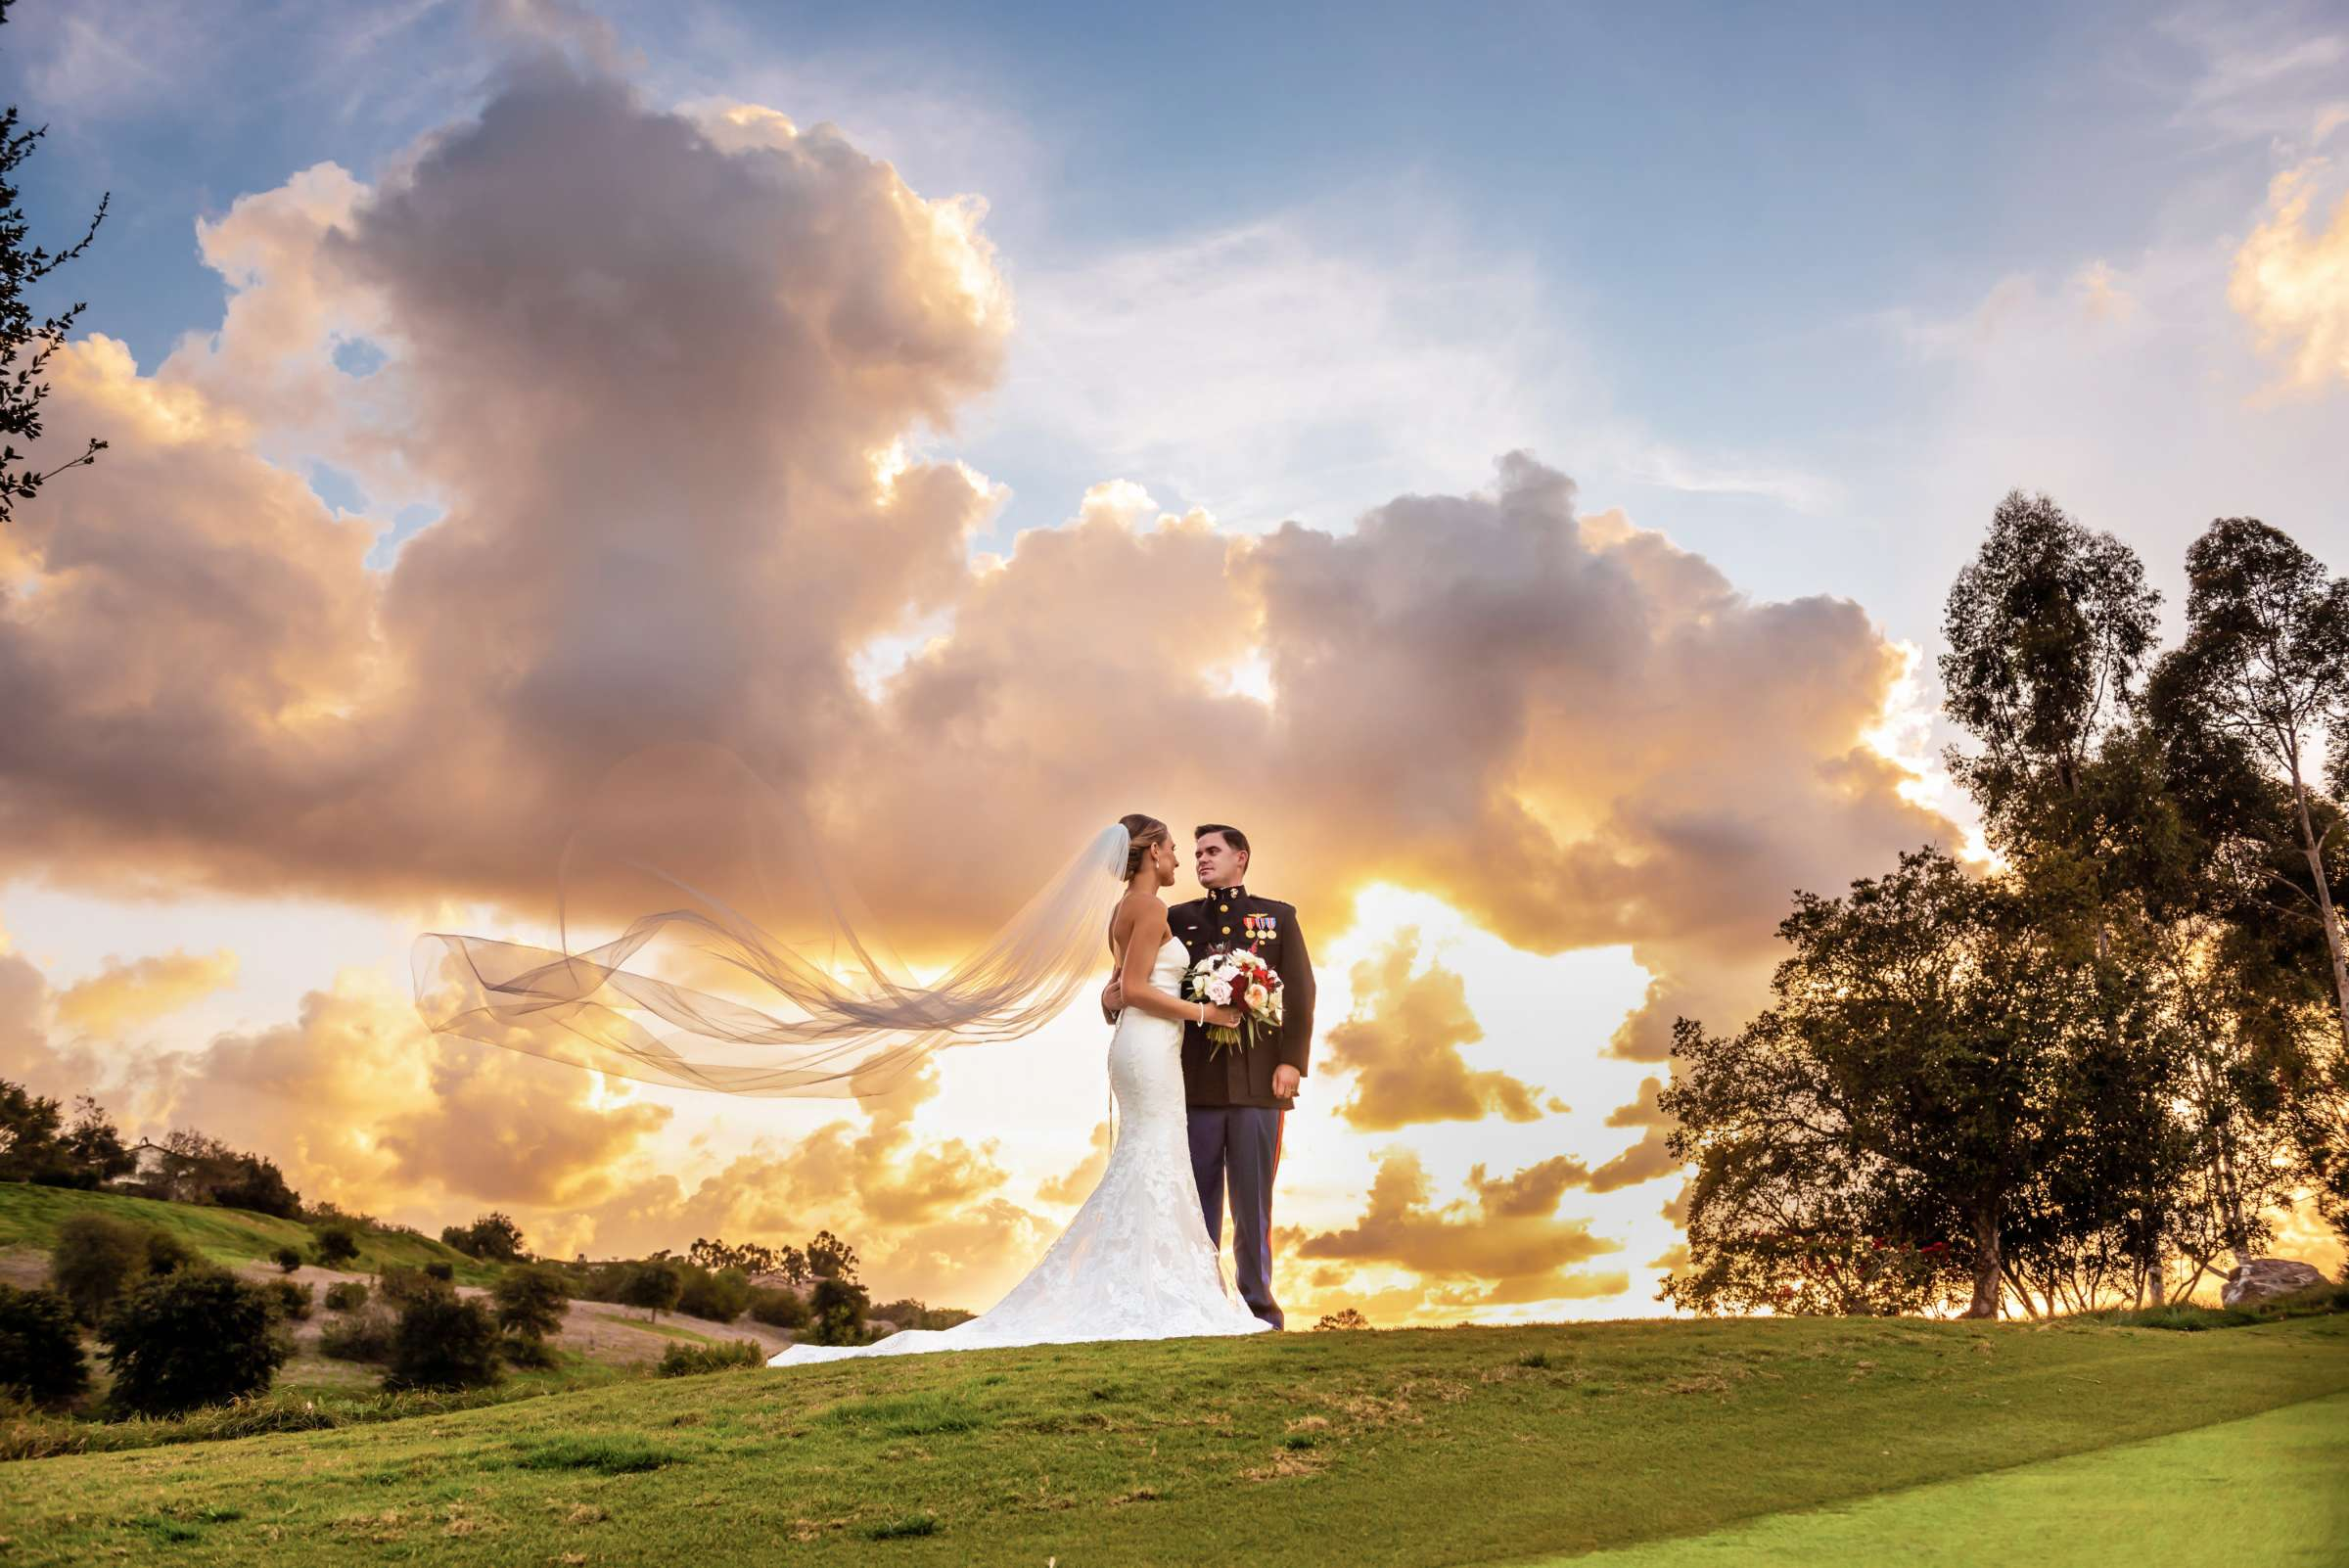 Photographers Favorite at The Santaluz Club Wedding, Erin and Taylor Wedding Photo #1 by True Photography